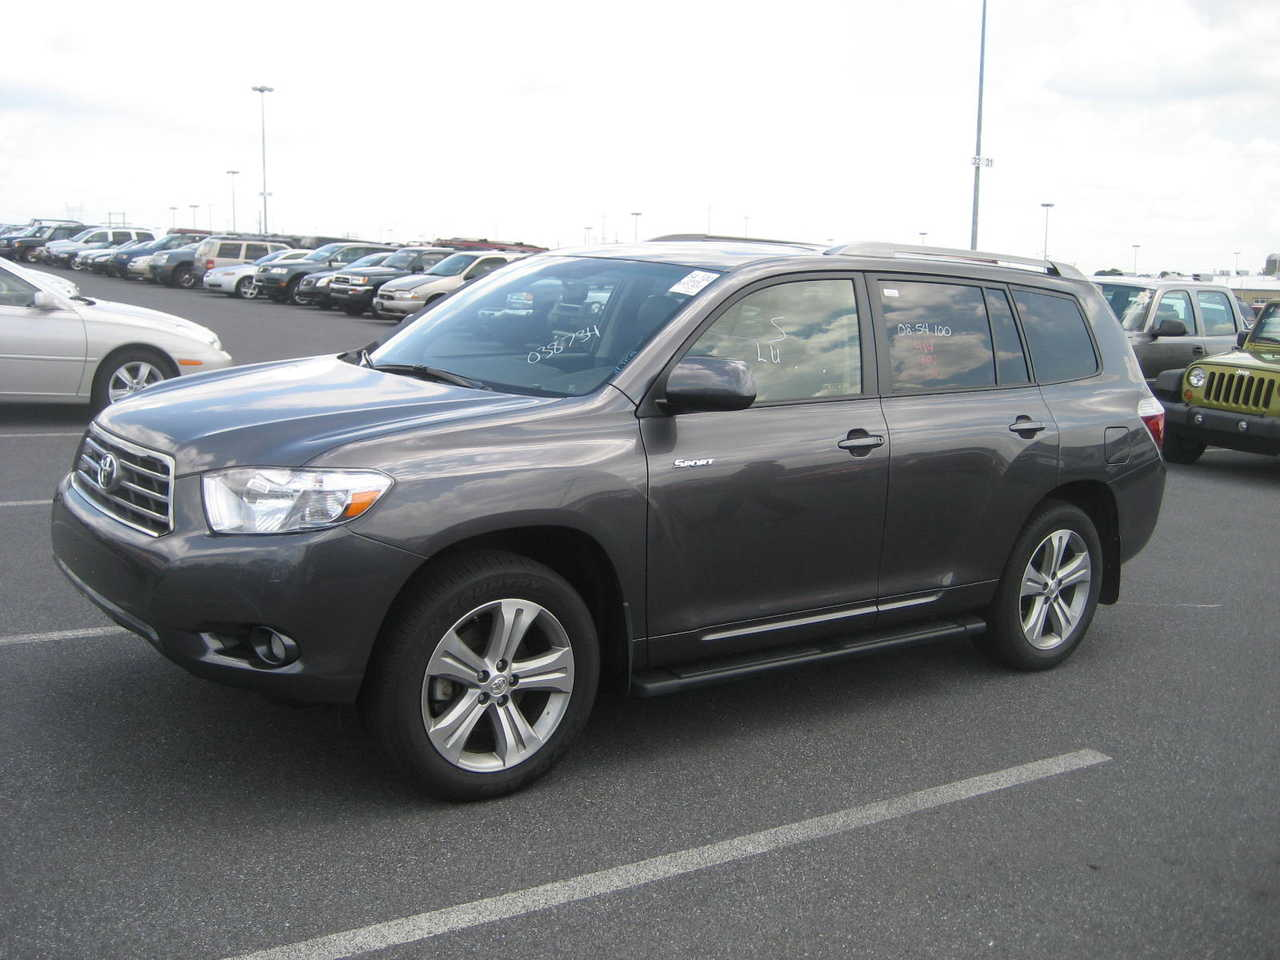 2007 toyota highlander photos 3 5 gasoline automatic for sale. Black Bedroom Furniture Sets. Home Design Ideas